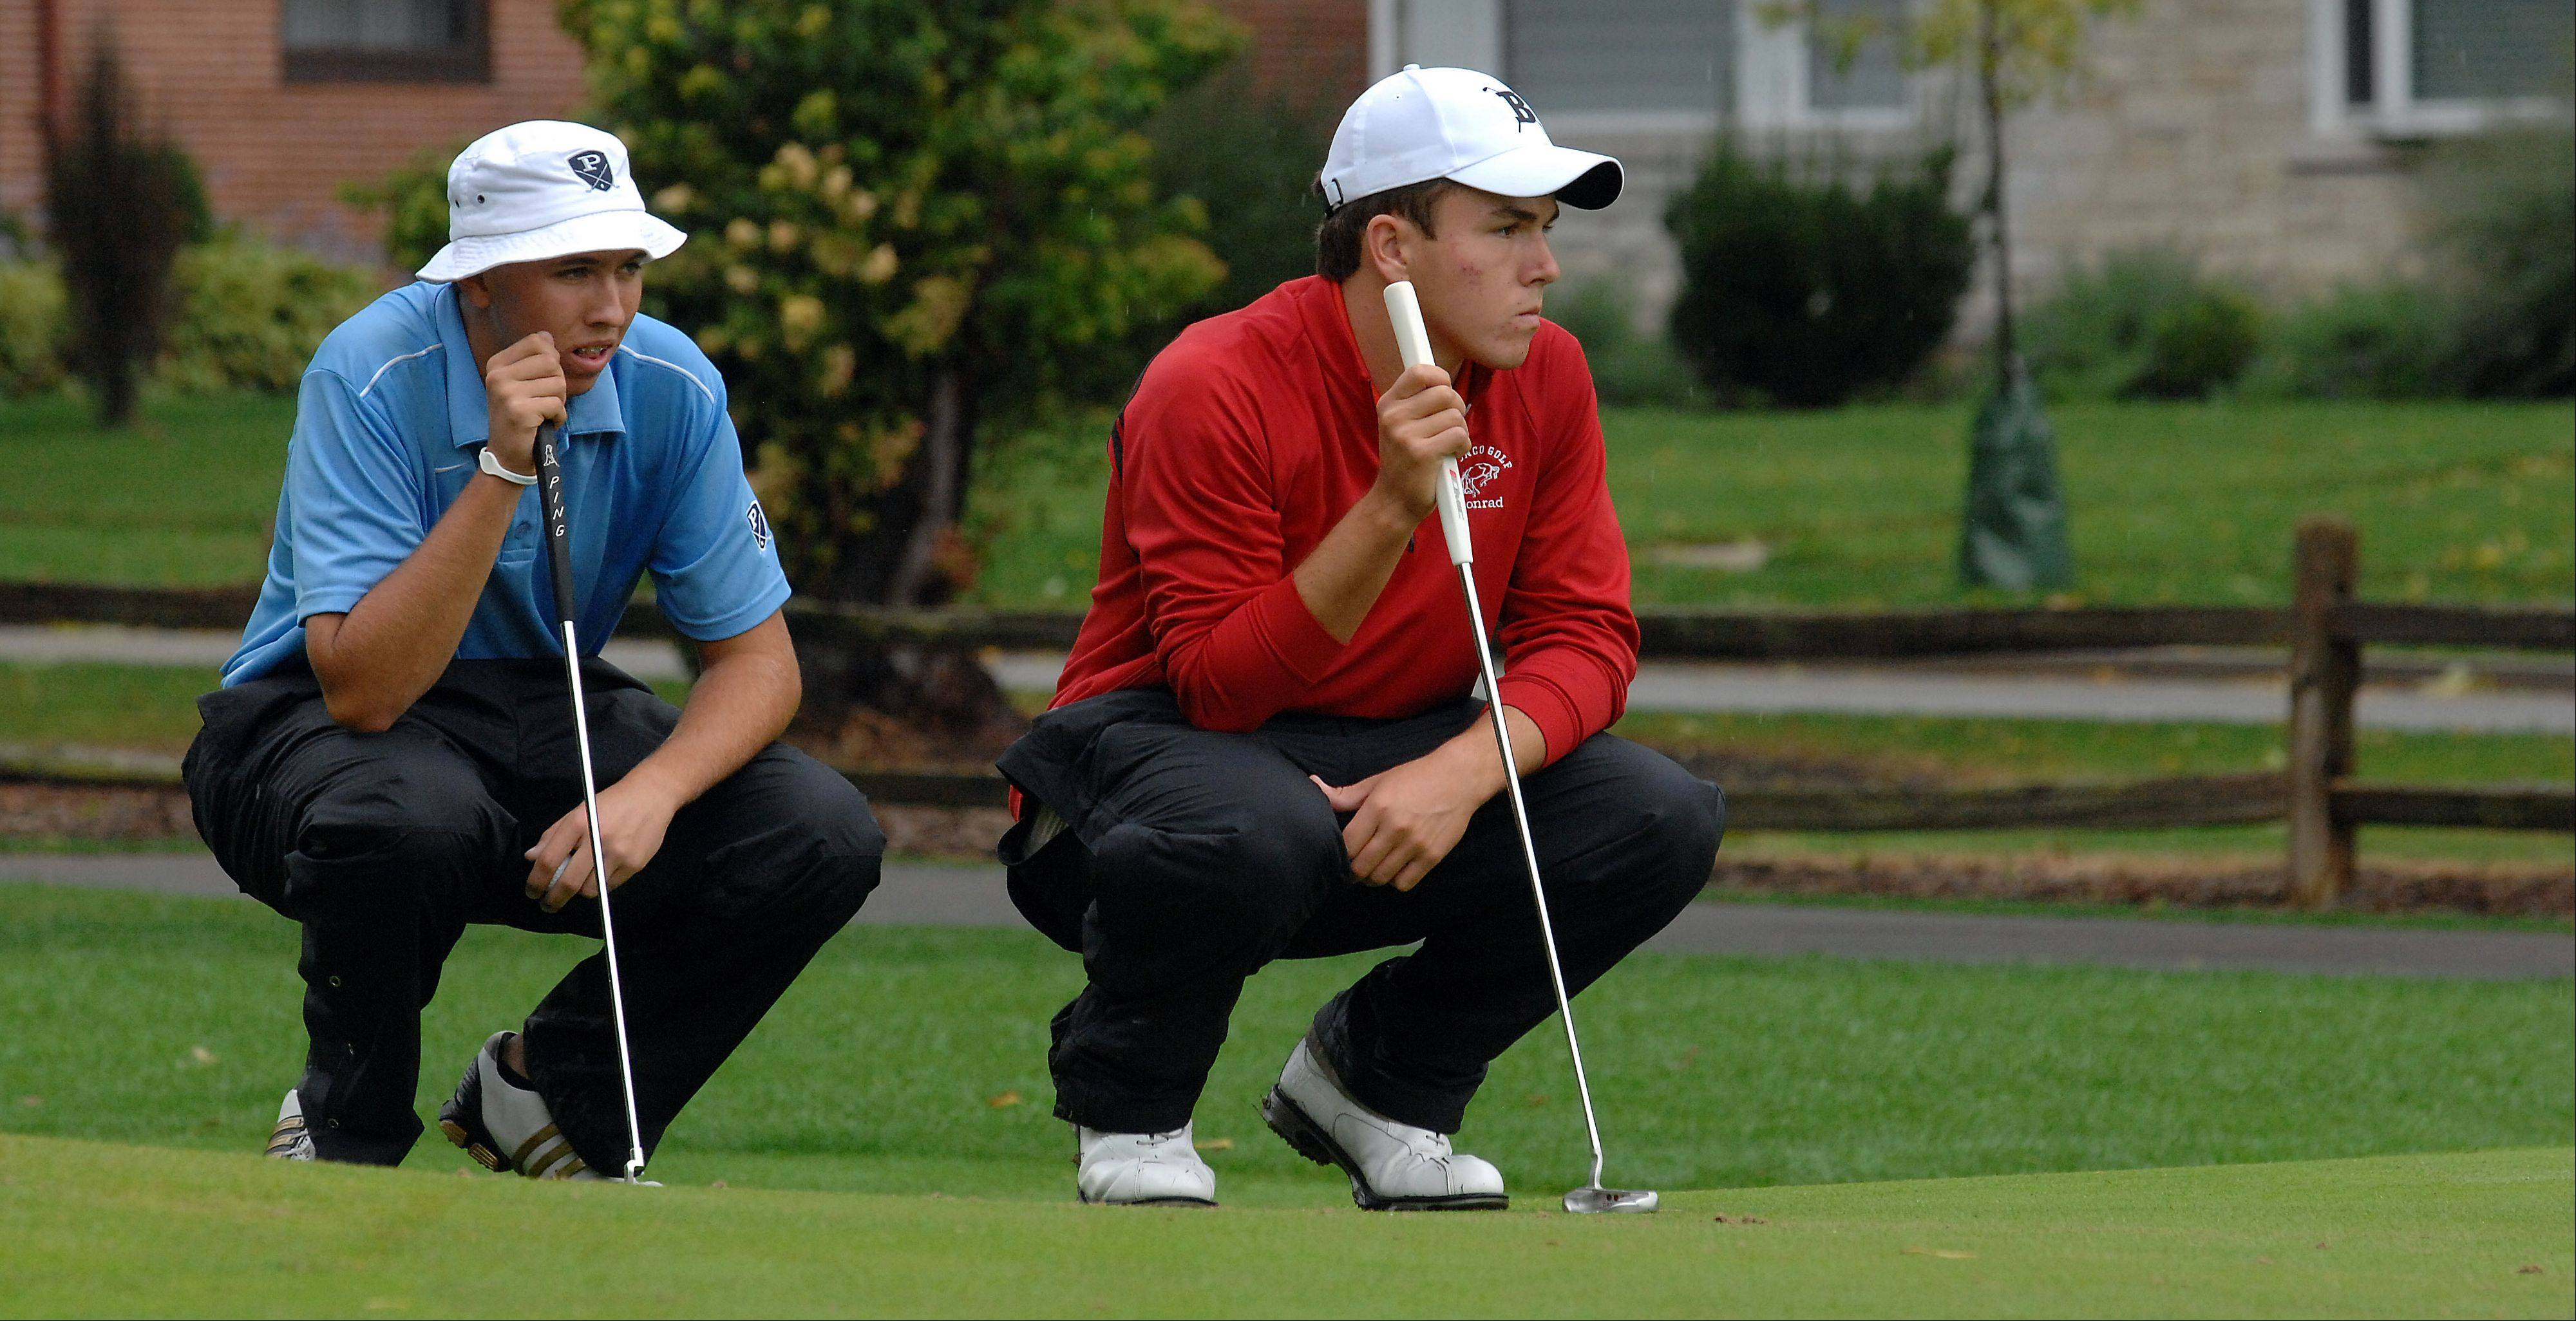 Barrington's Greg Conrad, right, and Prospect's Ryan Kowalski tried to read their putts at No. 9 on Mt. Prospect Golf Course during the Mid-Suburban League tournament on Tuesday.